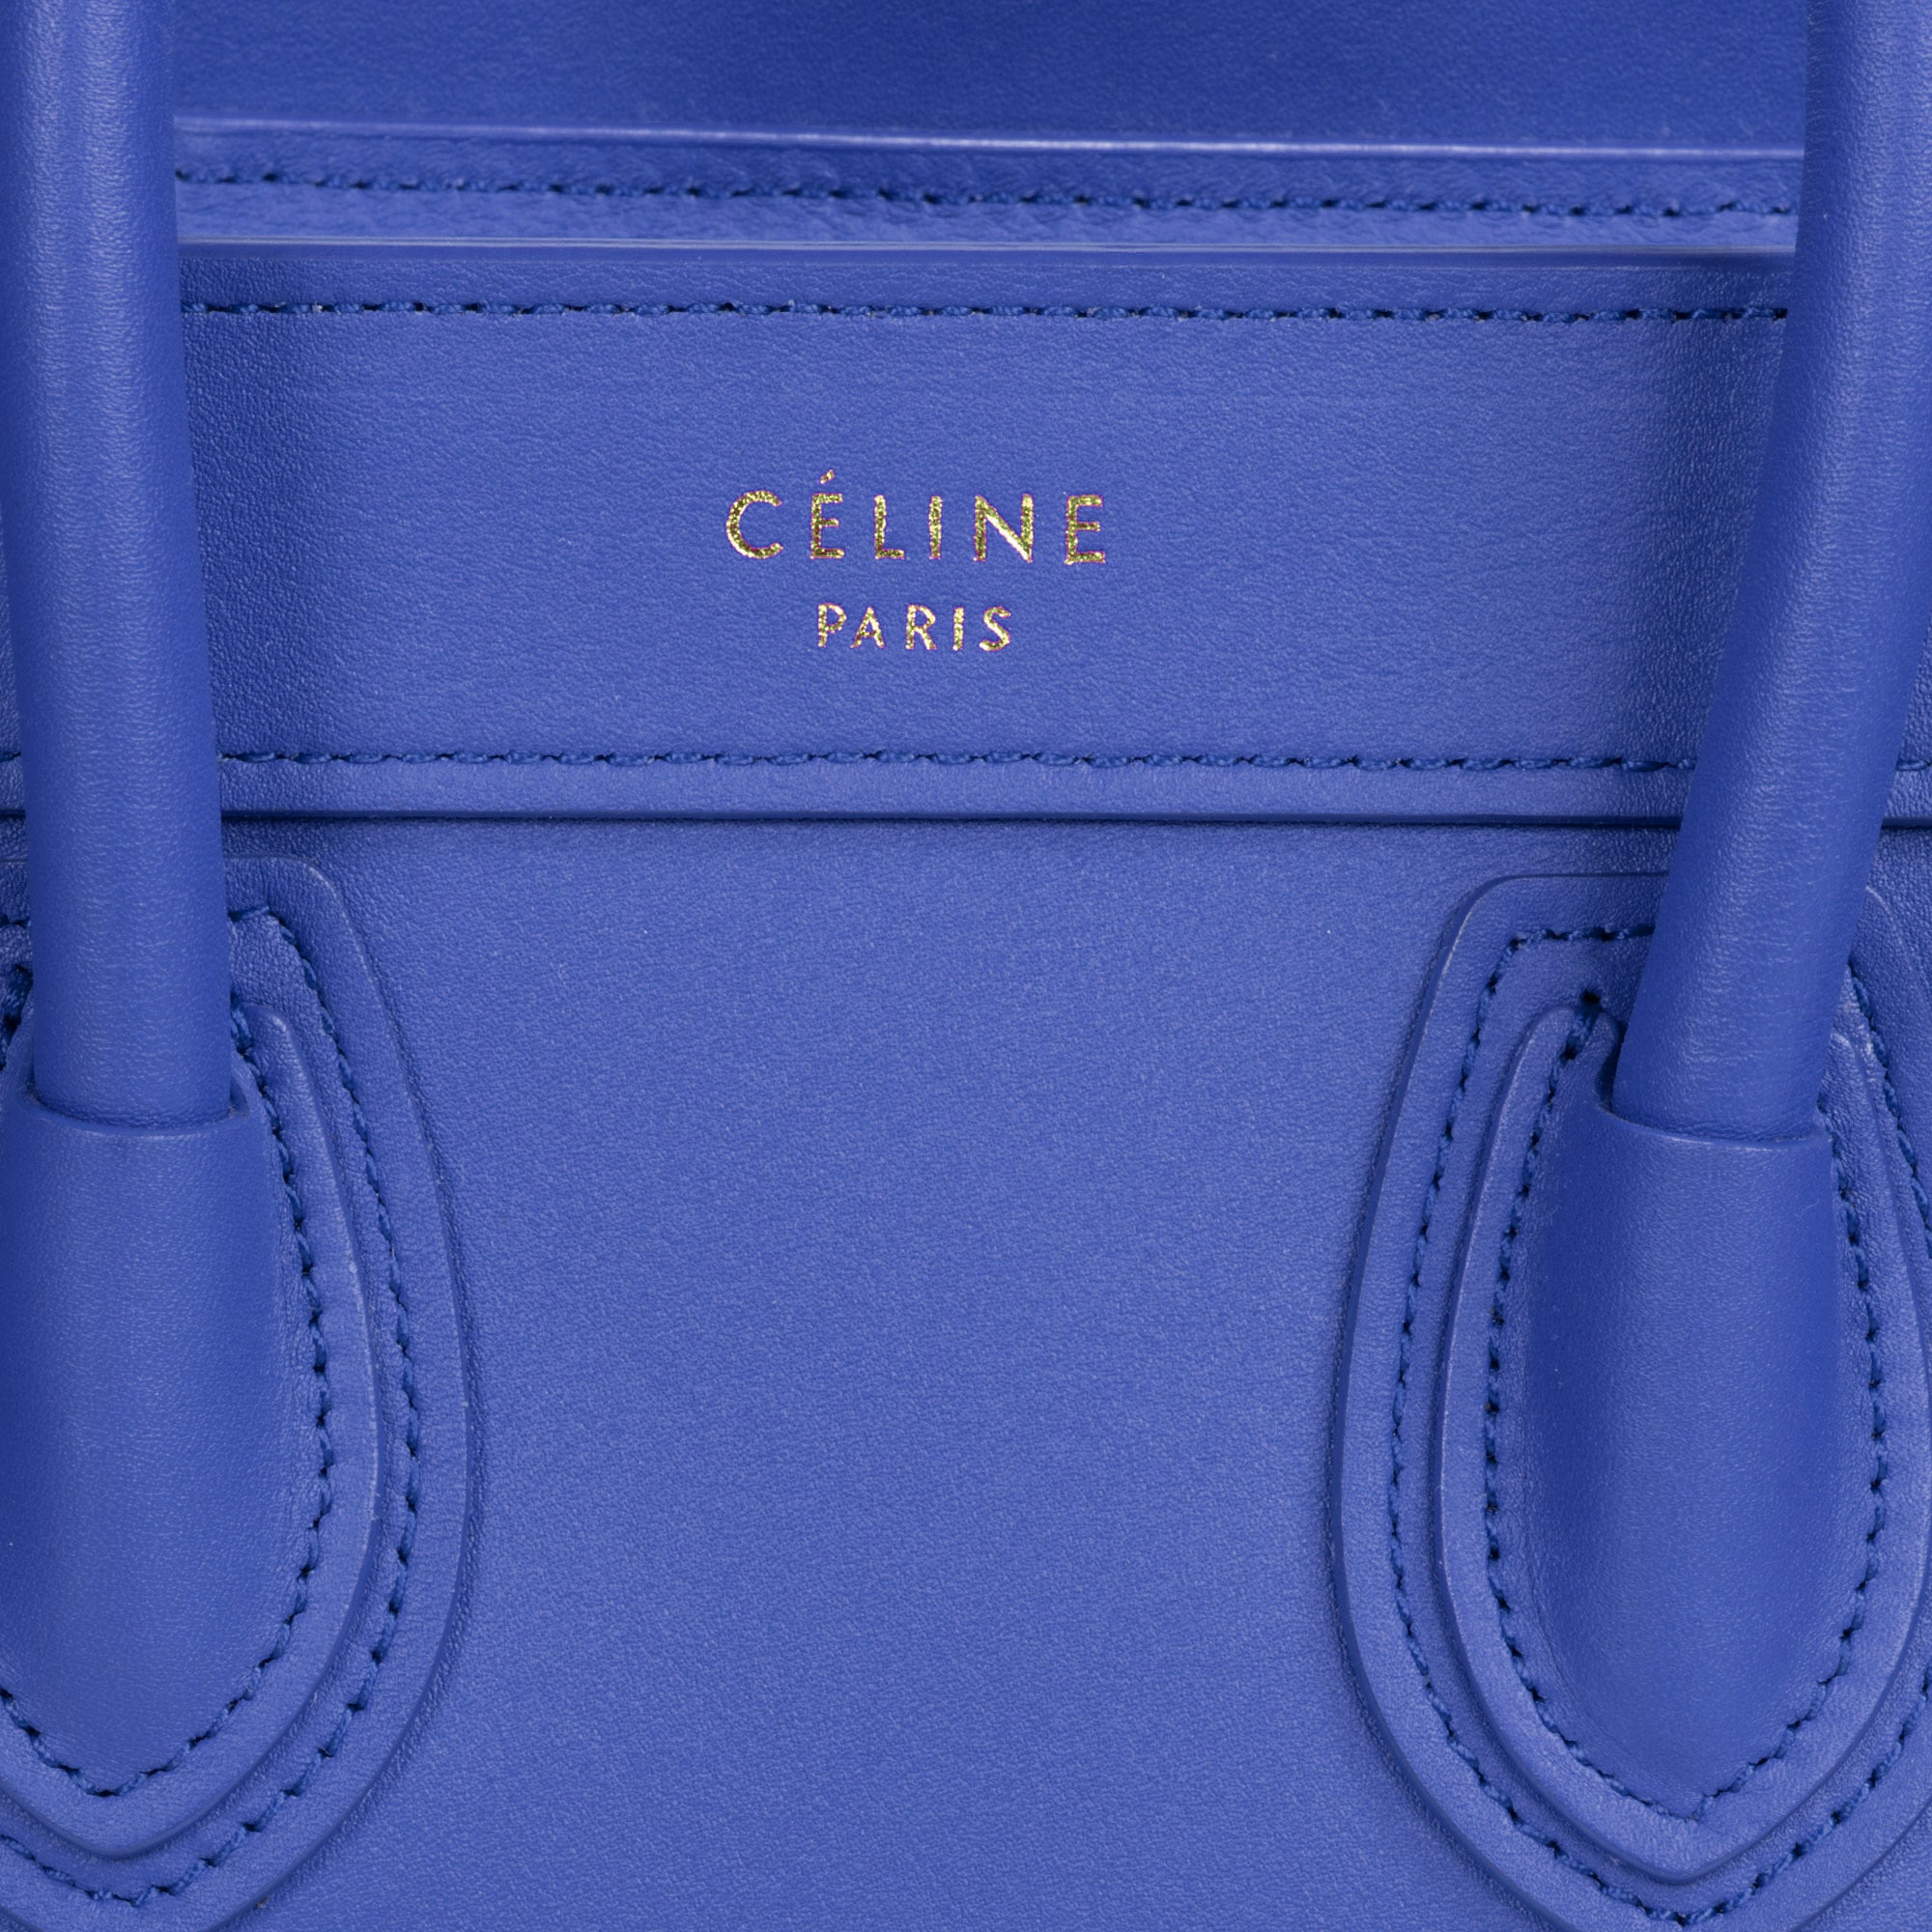 Céline Nano Luggage Bag in Smooth Indigo Calfskin Leather